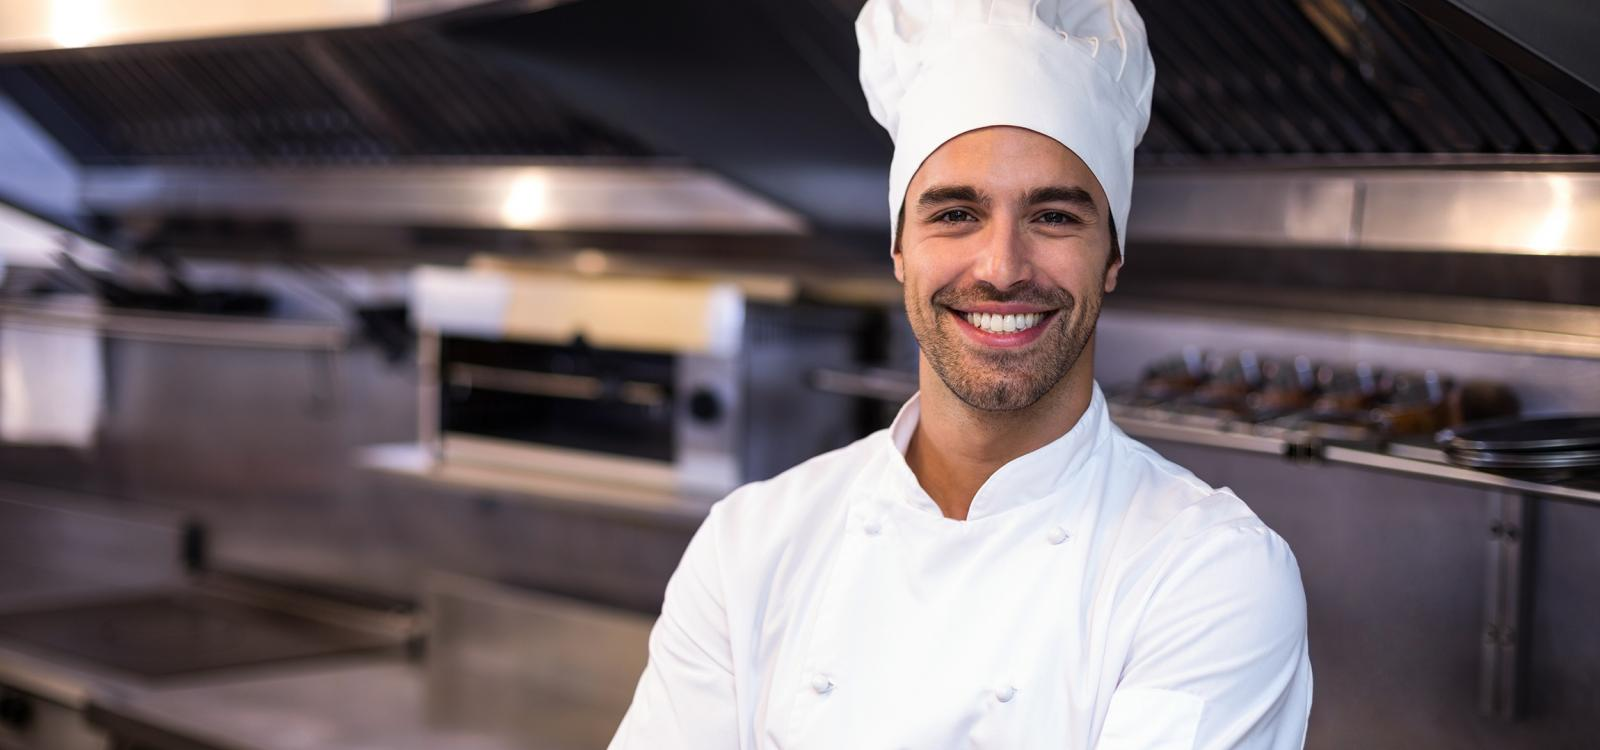 Ideal Chef Smile